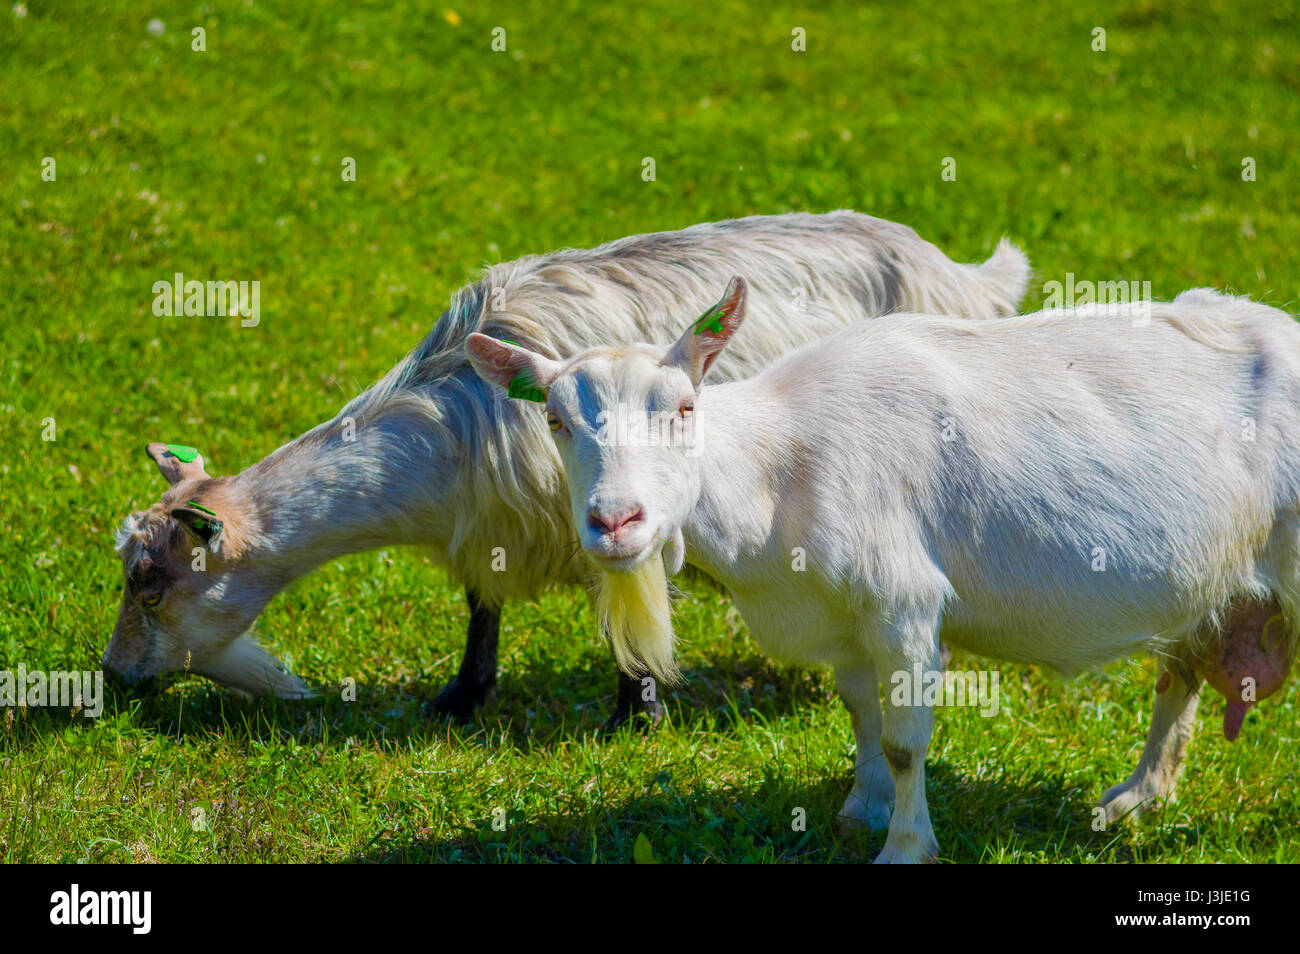 VALDRES, NORWAY - 6 JULY, 2015: Mountain goats wandering freely in beautiful sorroundings located at Valdresflya. - Stock Image